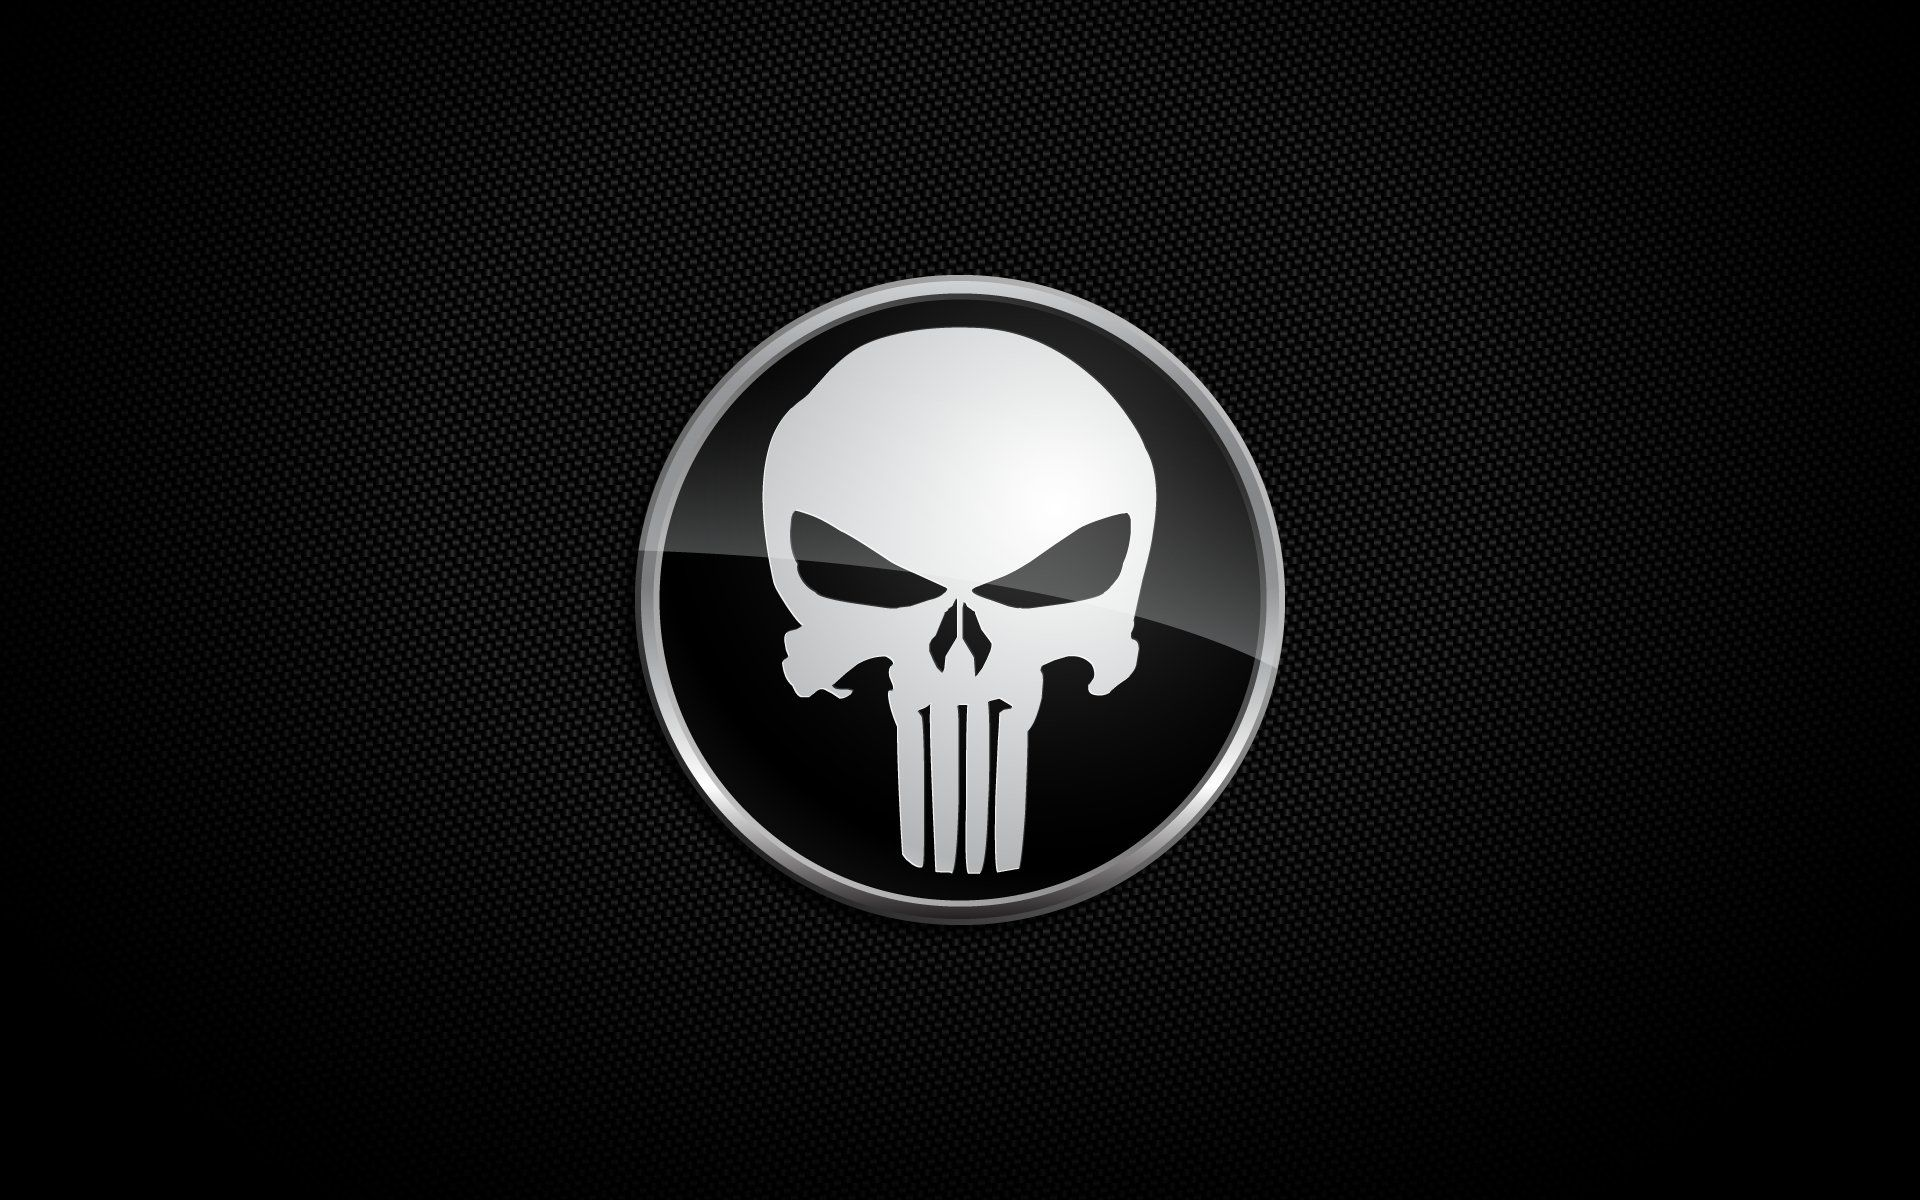 1920x1200 170 Punisher HD Wallpapers | Background Images - Wallpaper Abyss